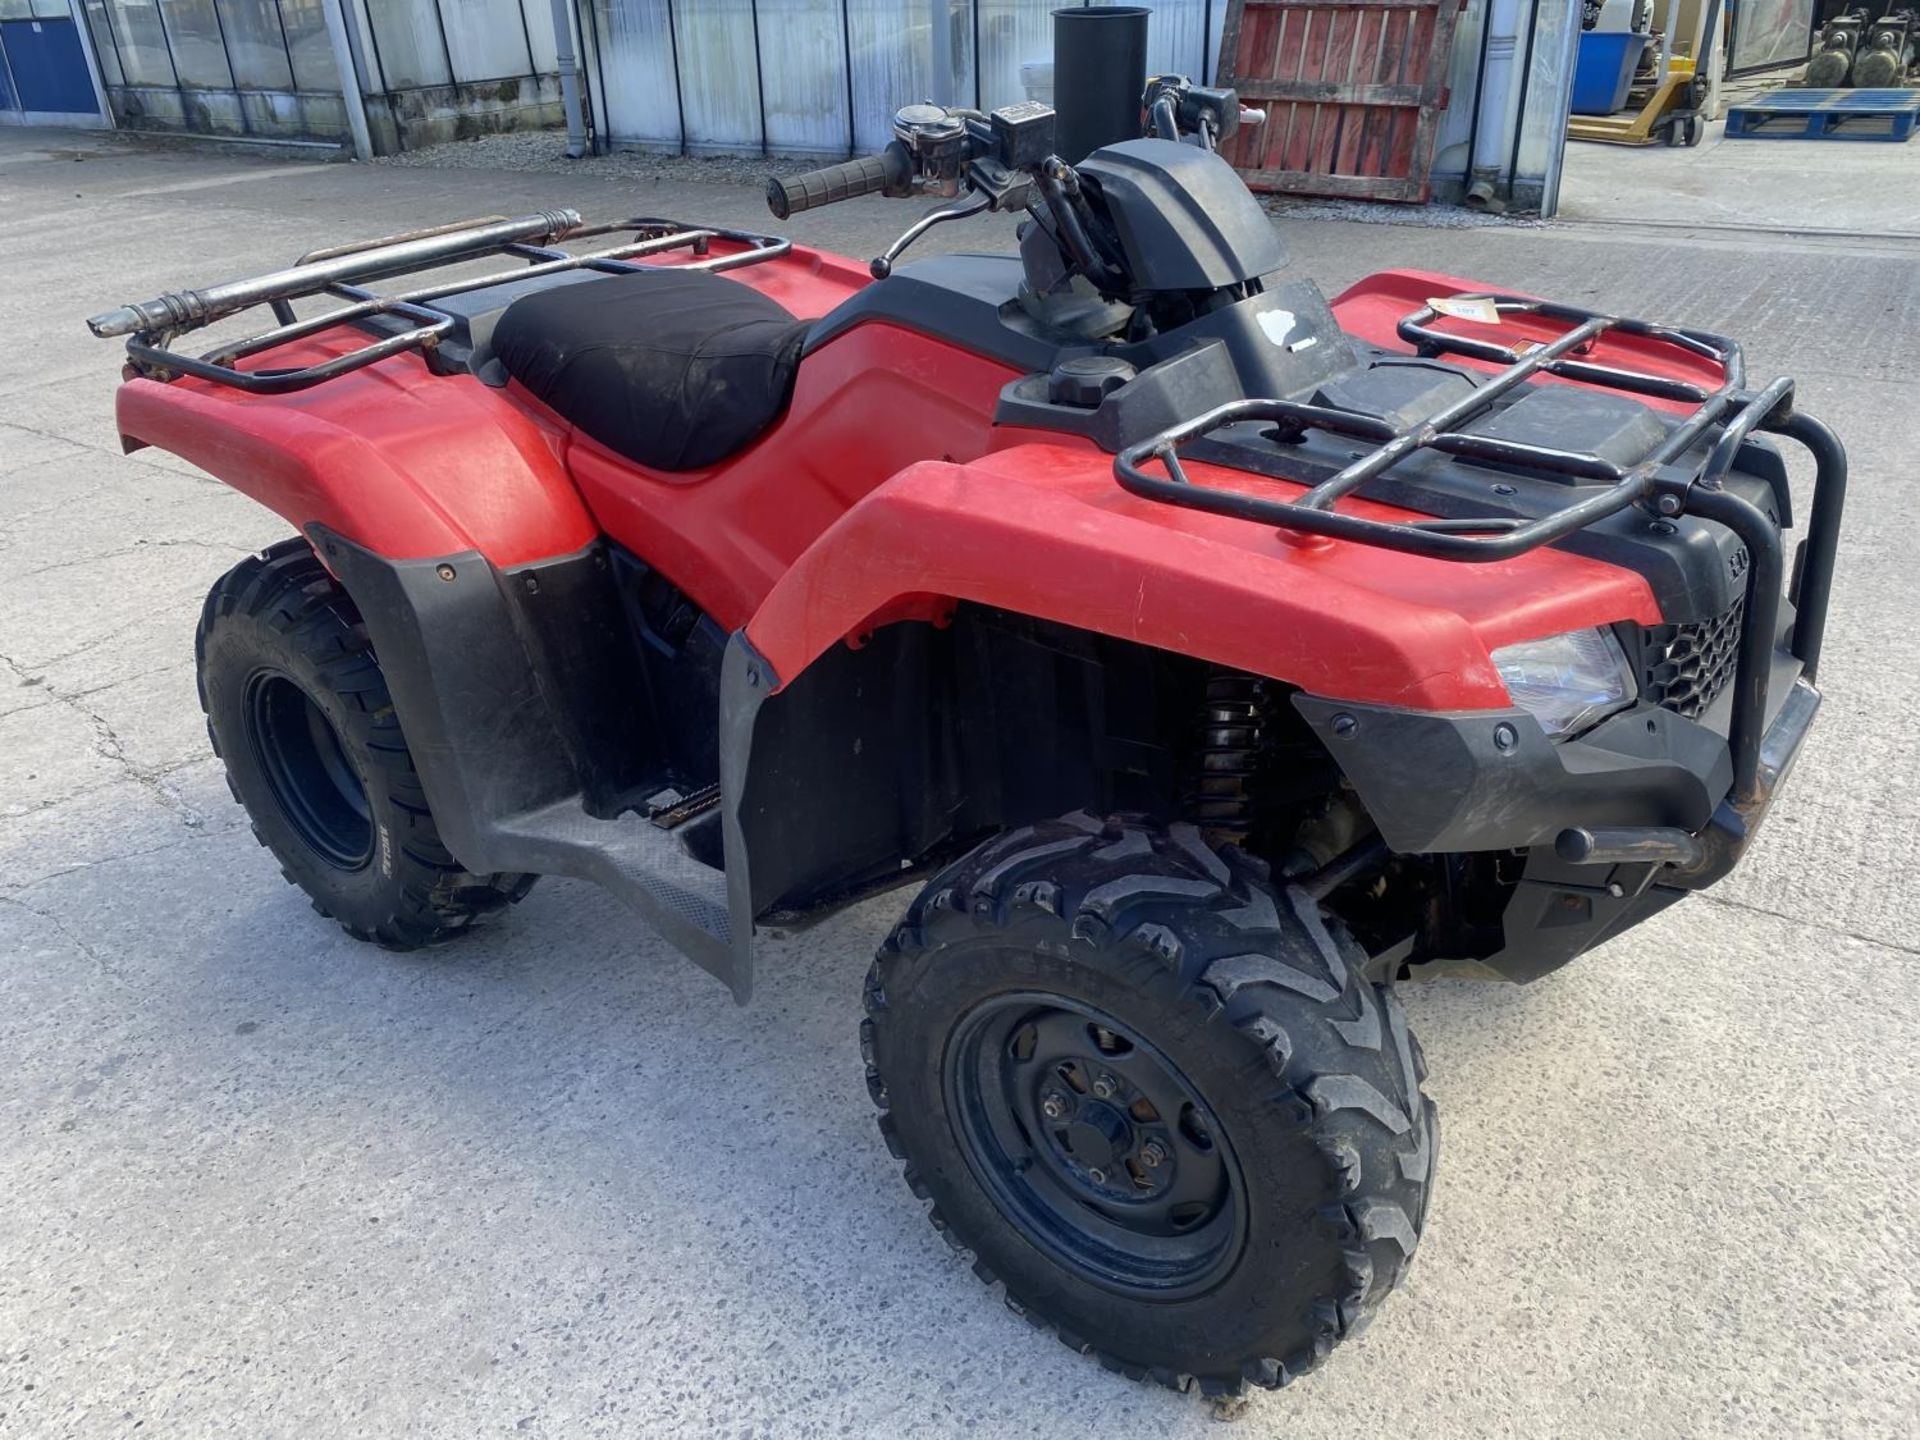 A 2017 HONDA TRX 420 QUAD BIKE - SEE VIDEO OF VEHICLE STARTING AND RUNNING AT https://www.youtube. - Image 4 of 10